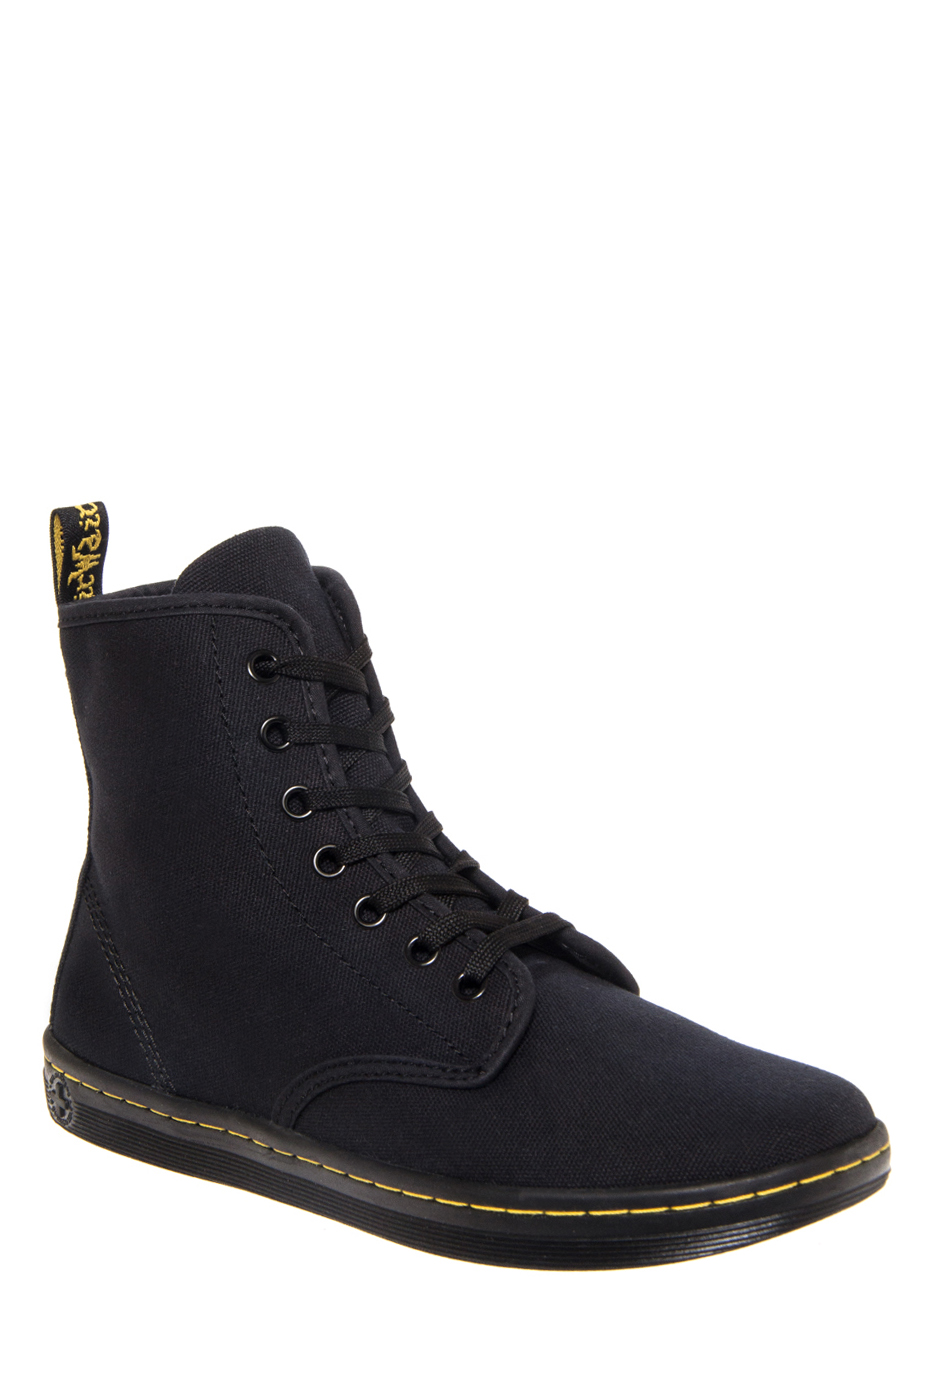 Dr. Martens Shoreditch Canvas High Top Sneakers - Black Canvas